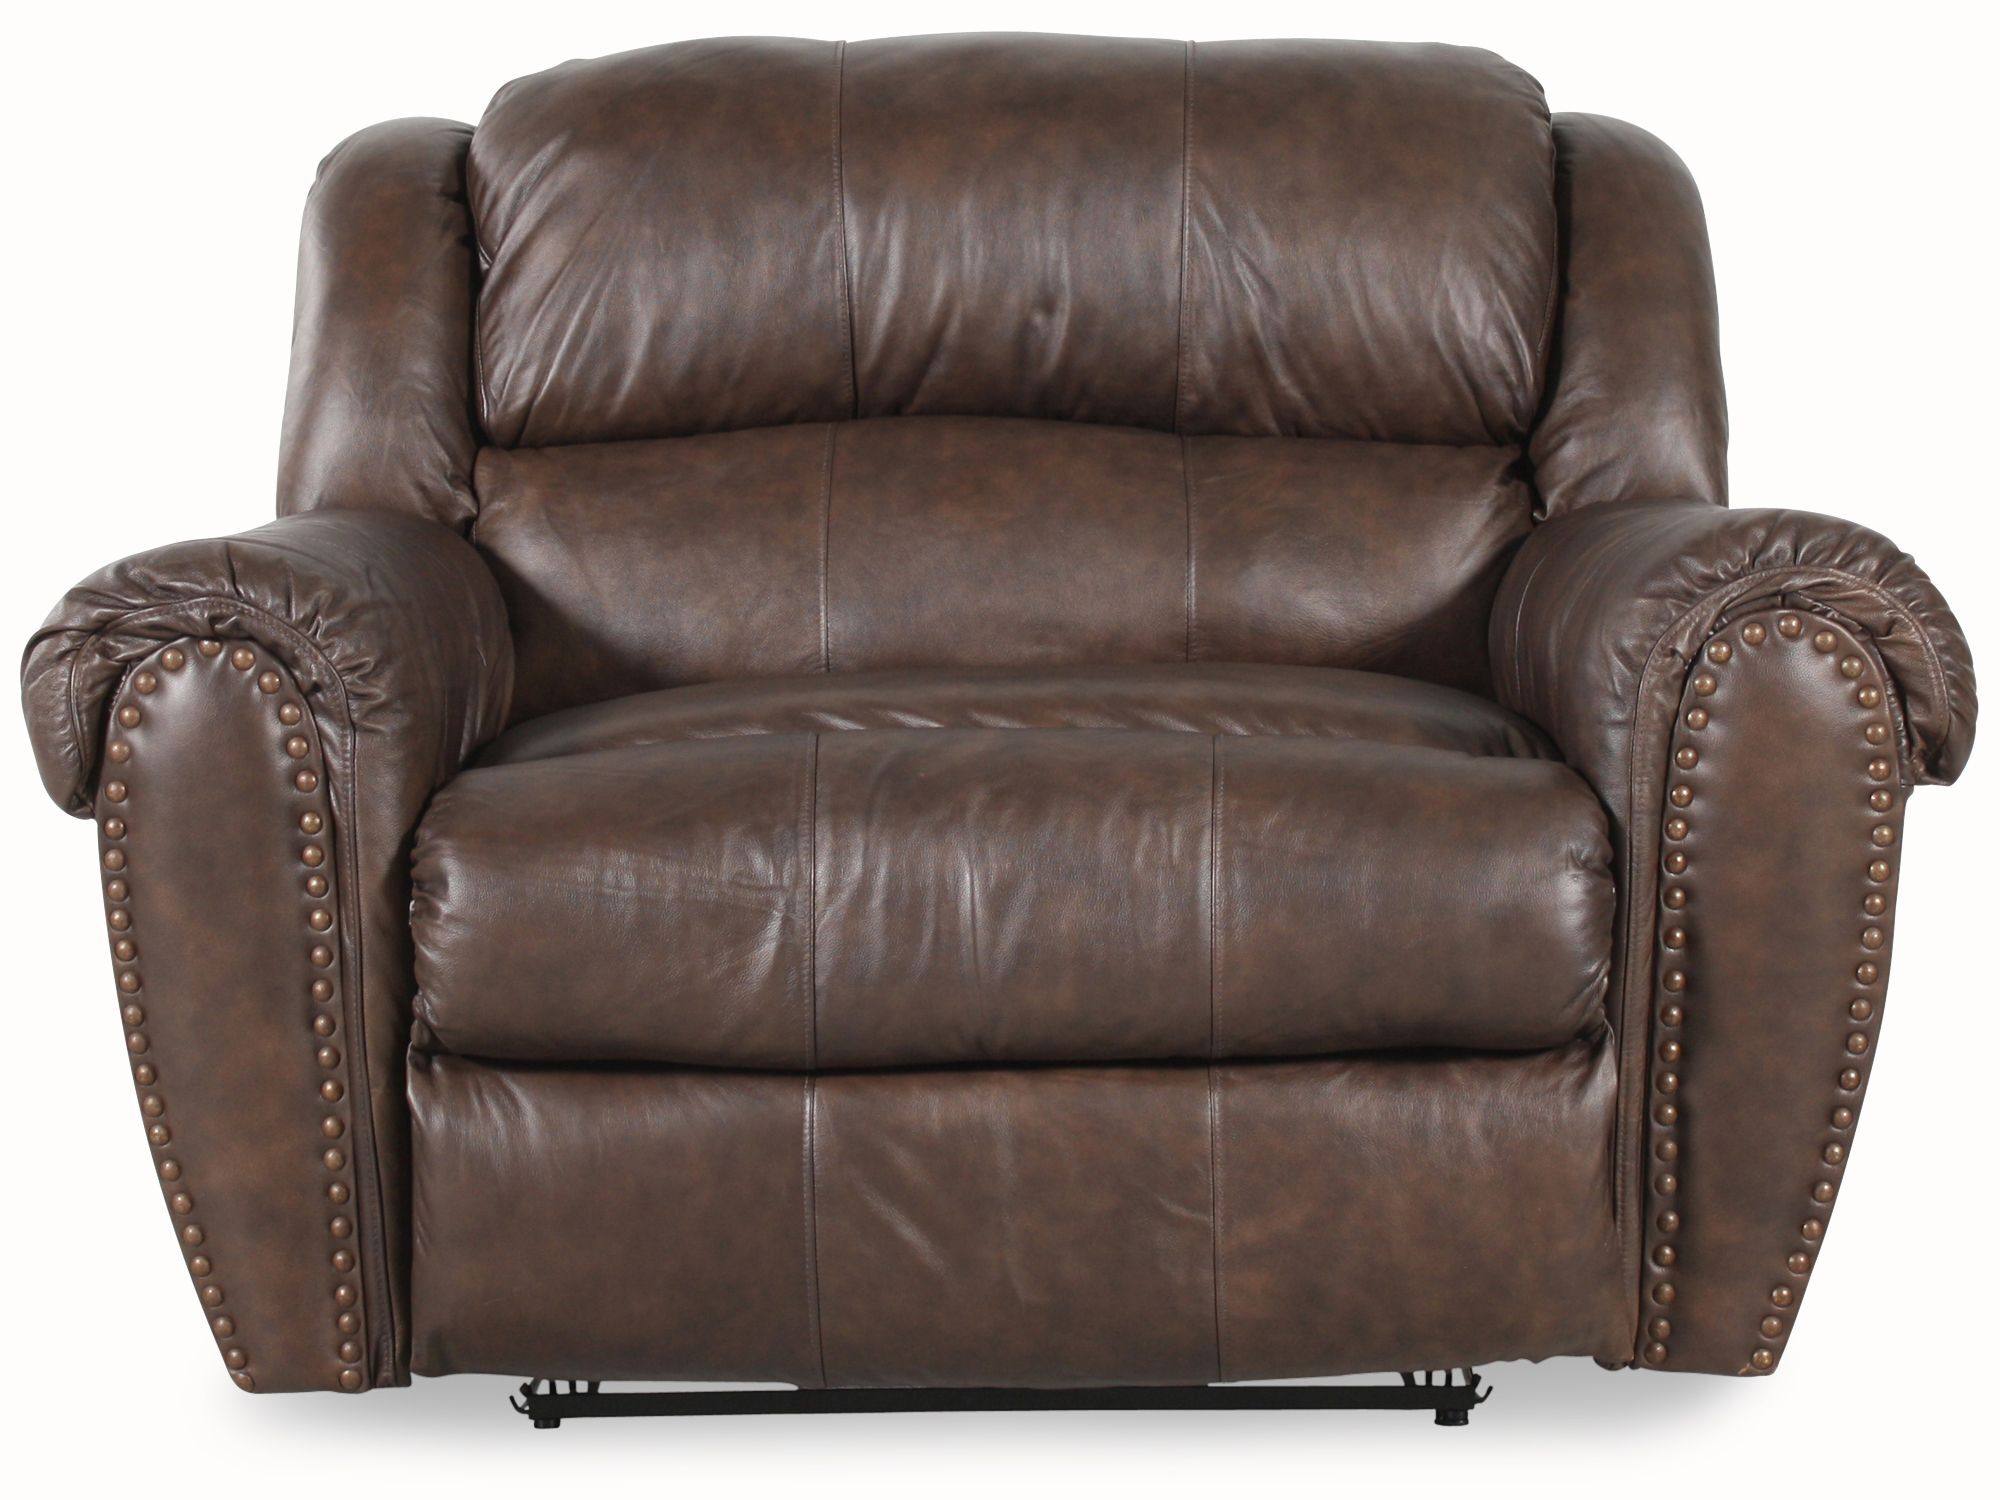 Lane Summerlin Snuggler Leather Recliner  sc 1 st  Mathis Brothers & Lane Summerlin Snuggler Leather Recliner | Mathis Brothers Furniture islam-shia.org